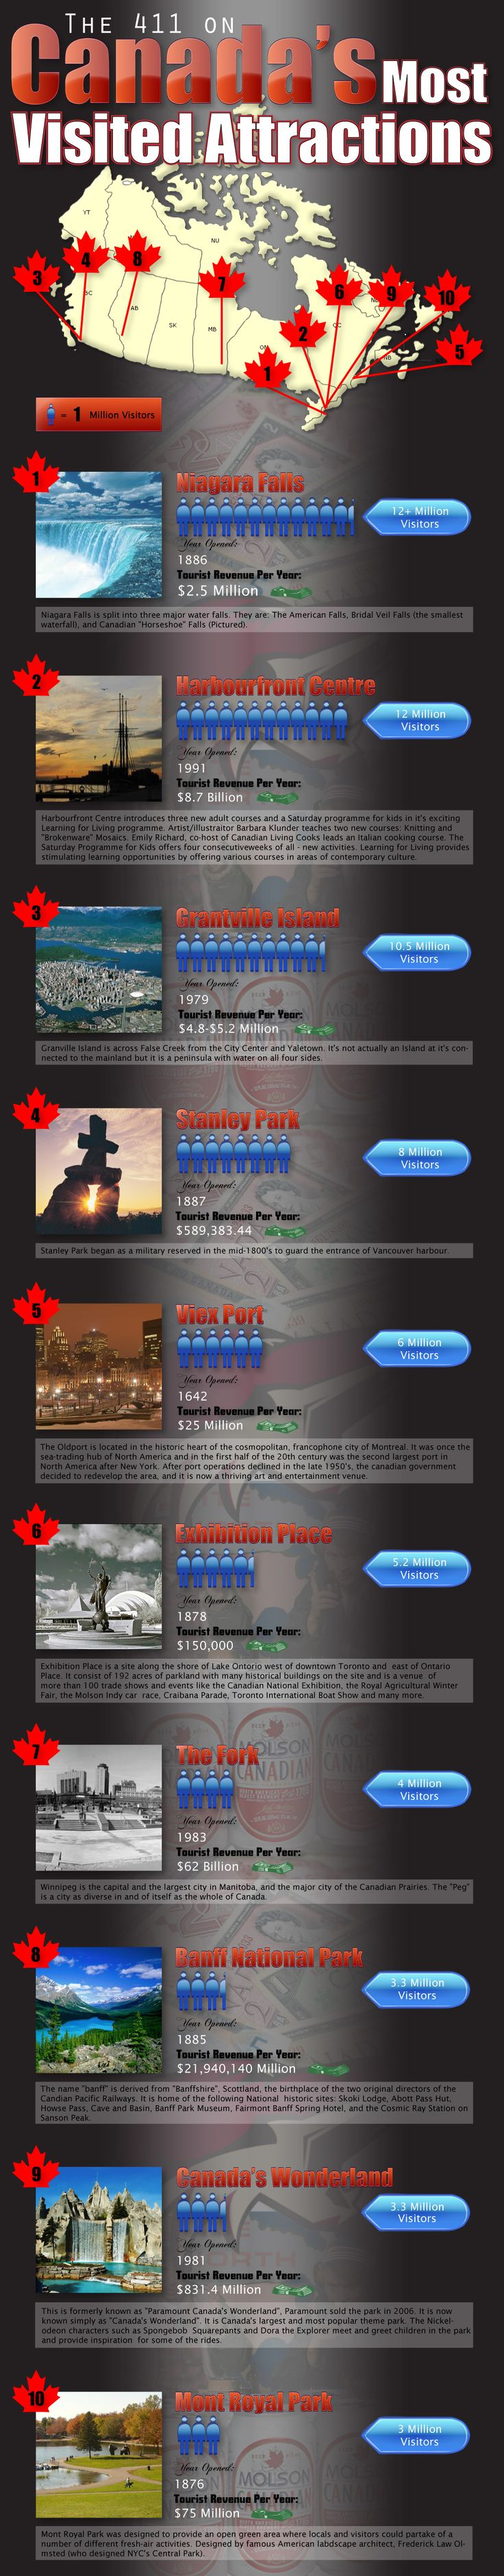 Canada's Most Visited Attractions